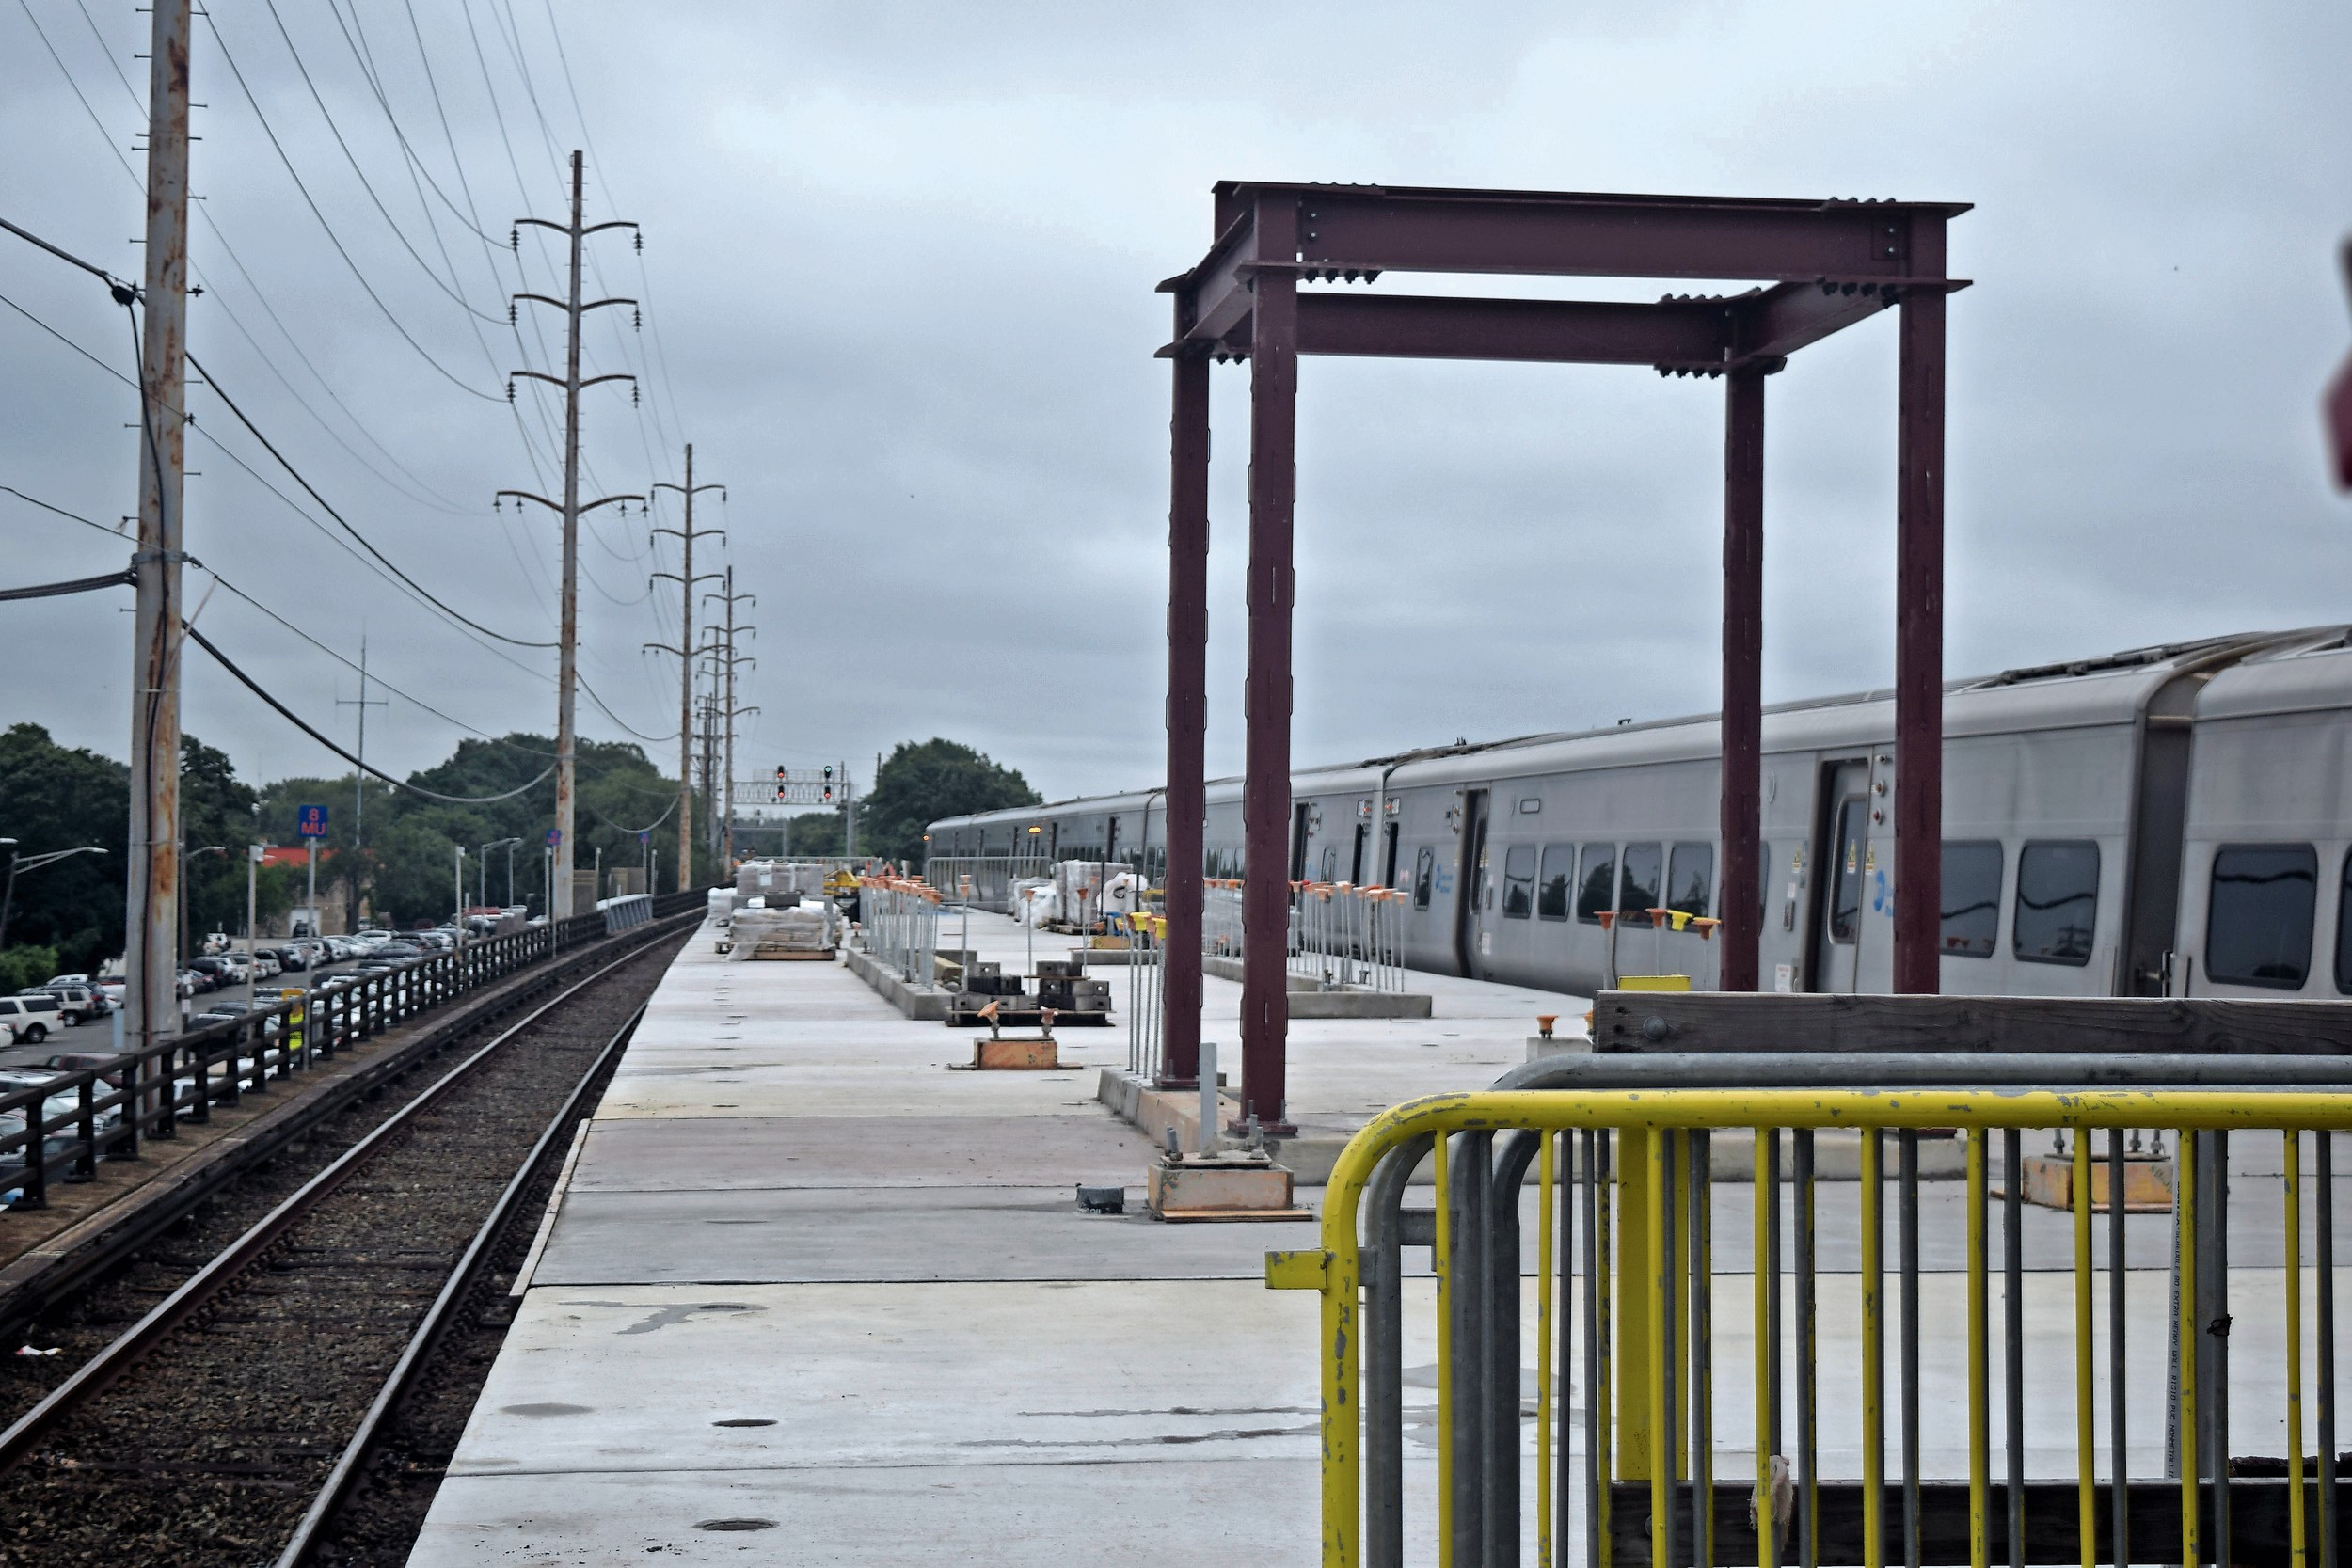 The Long Island Rail Road is about halfway through its $23.9 million rehabilitation of the Wantagh station.